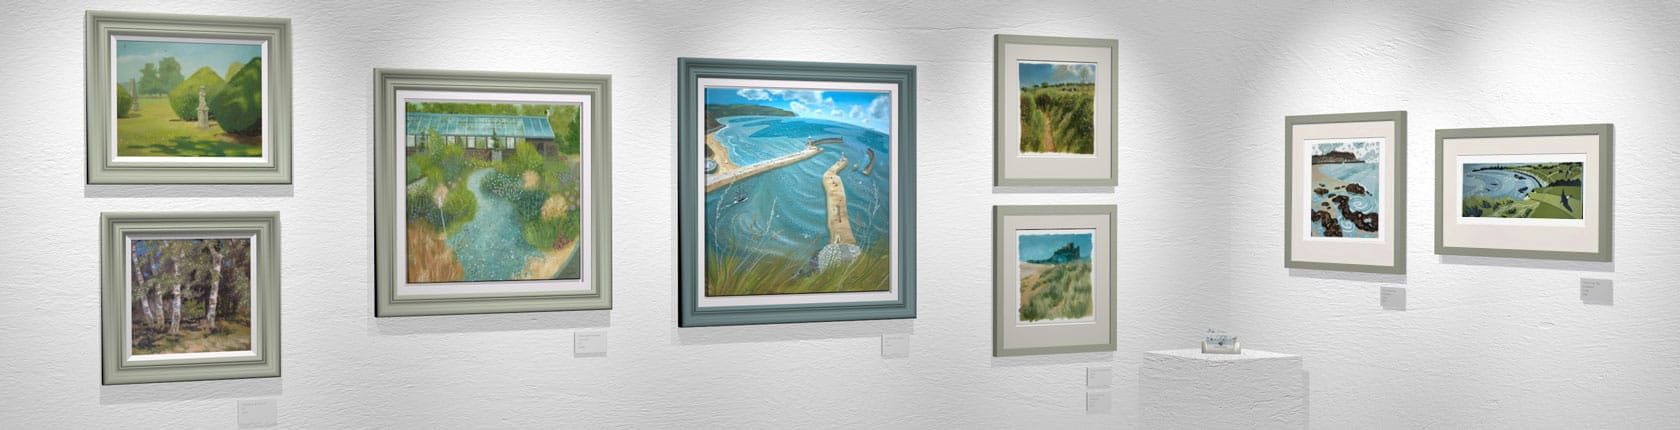 Studio oil paintings, plein air oils, acrylic and prints